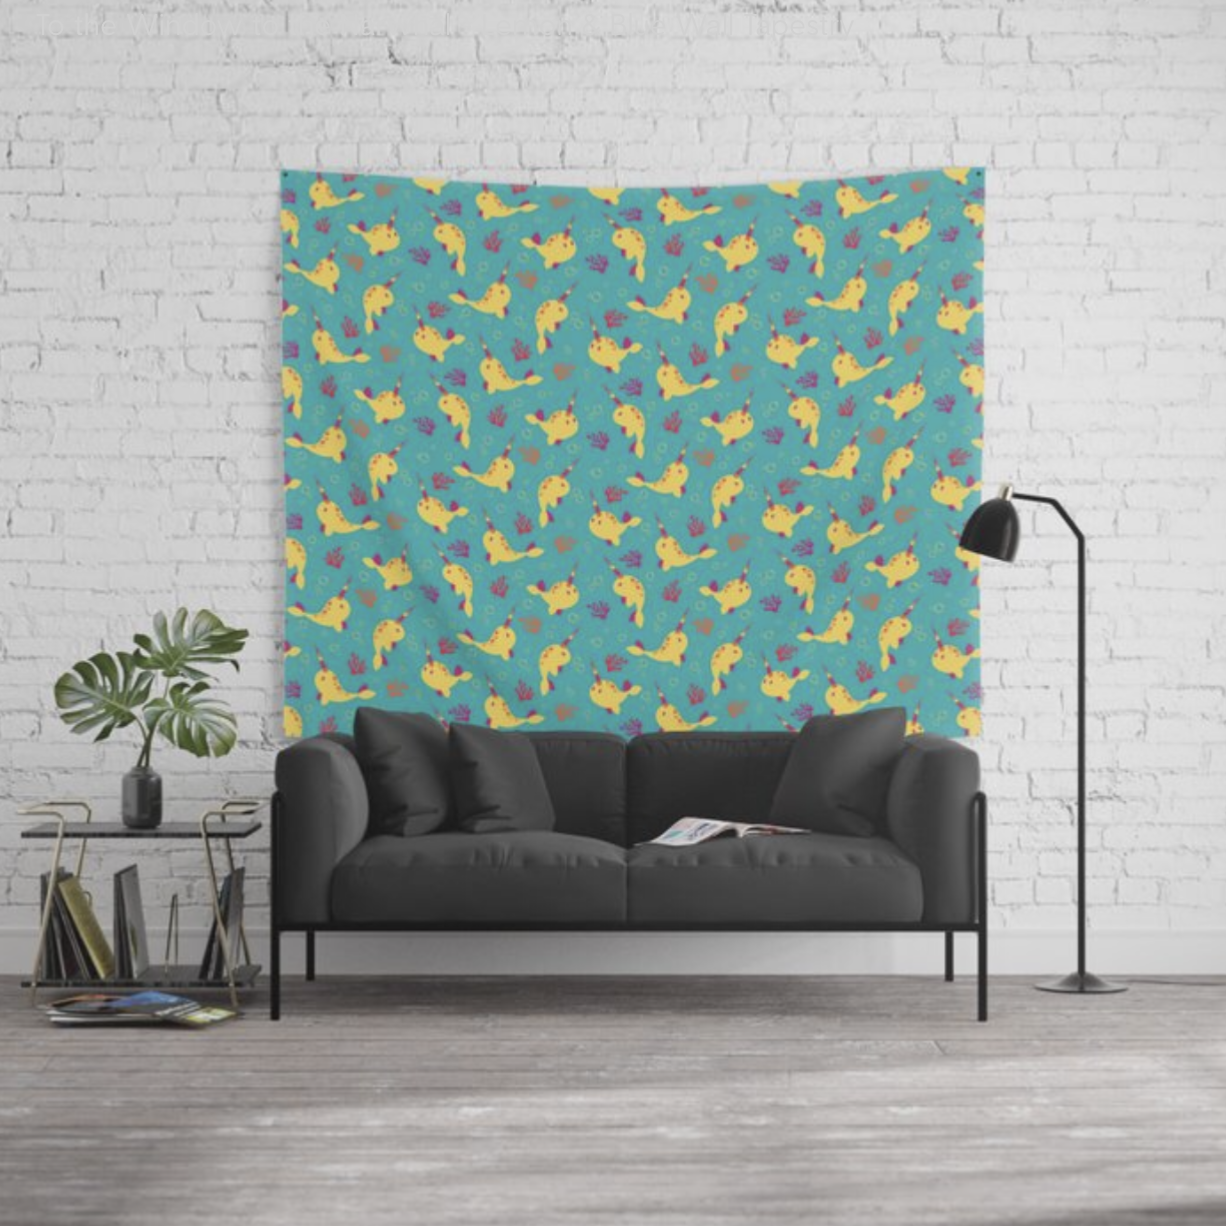 To the Window to the Narwhal tapestry from Society6